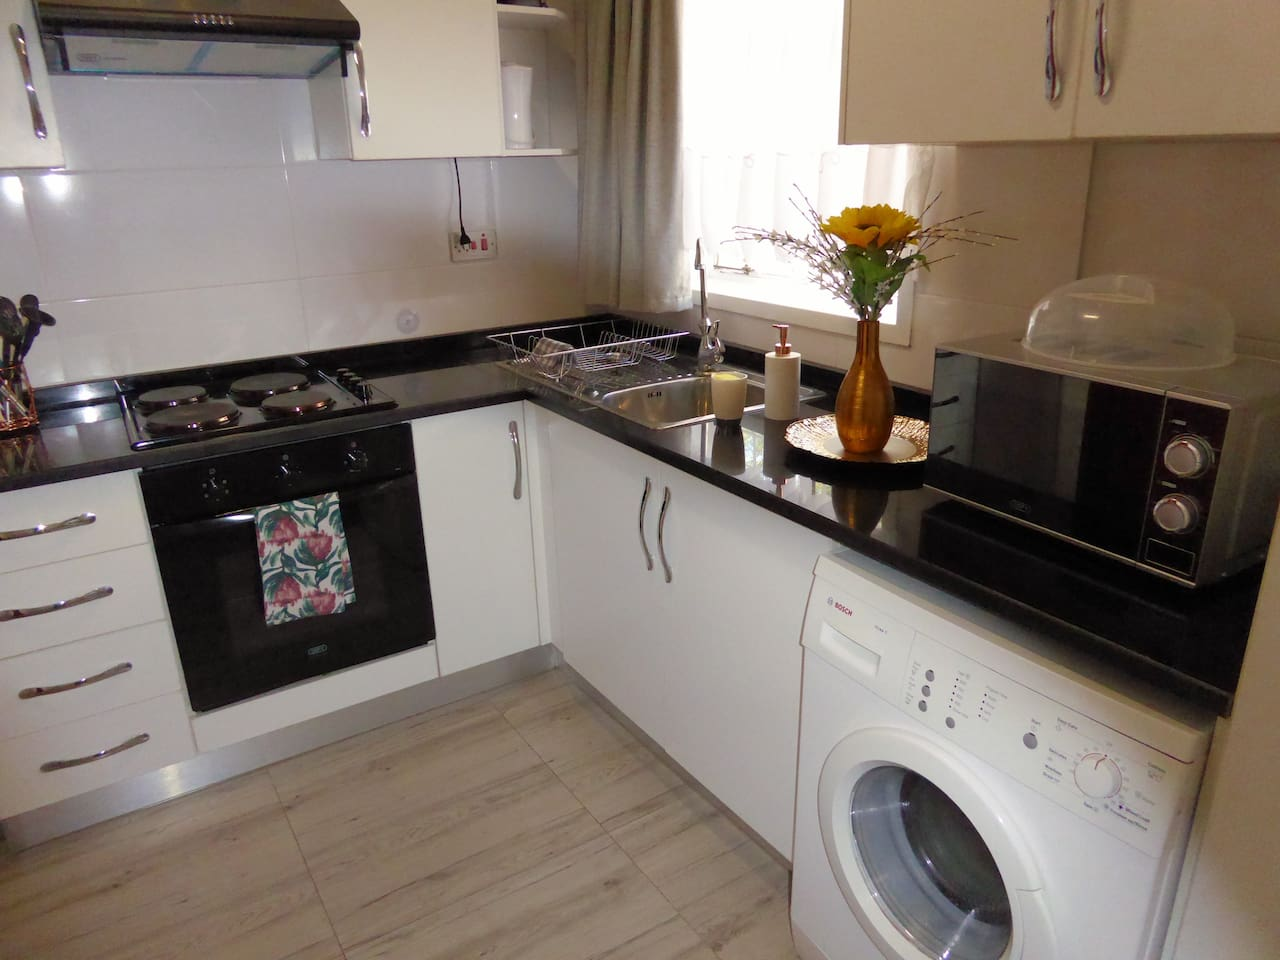 Fitted kitchen - stove, fridge, washing machine, microwave & cooking utensils